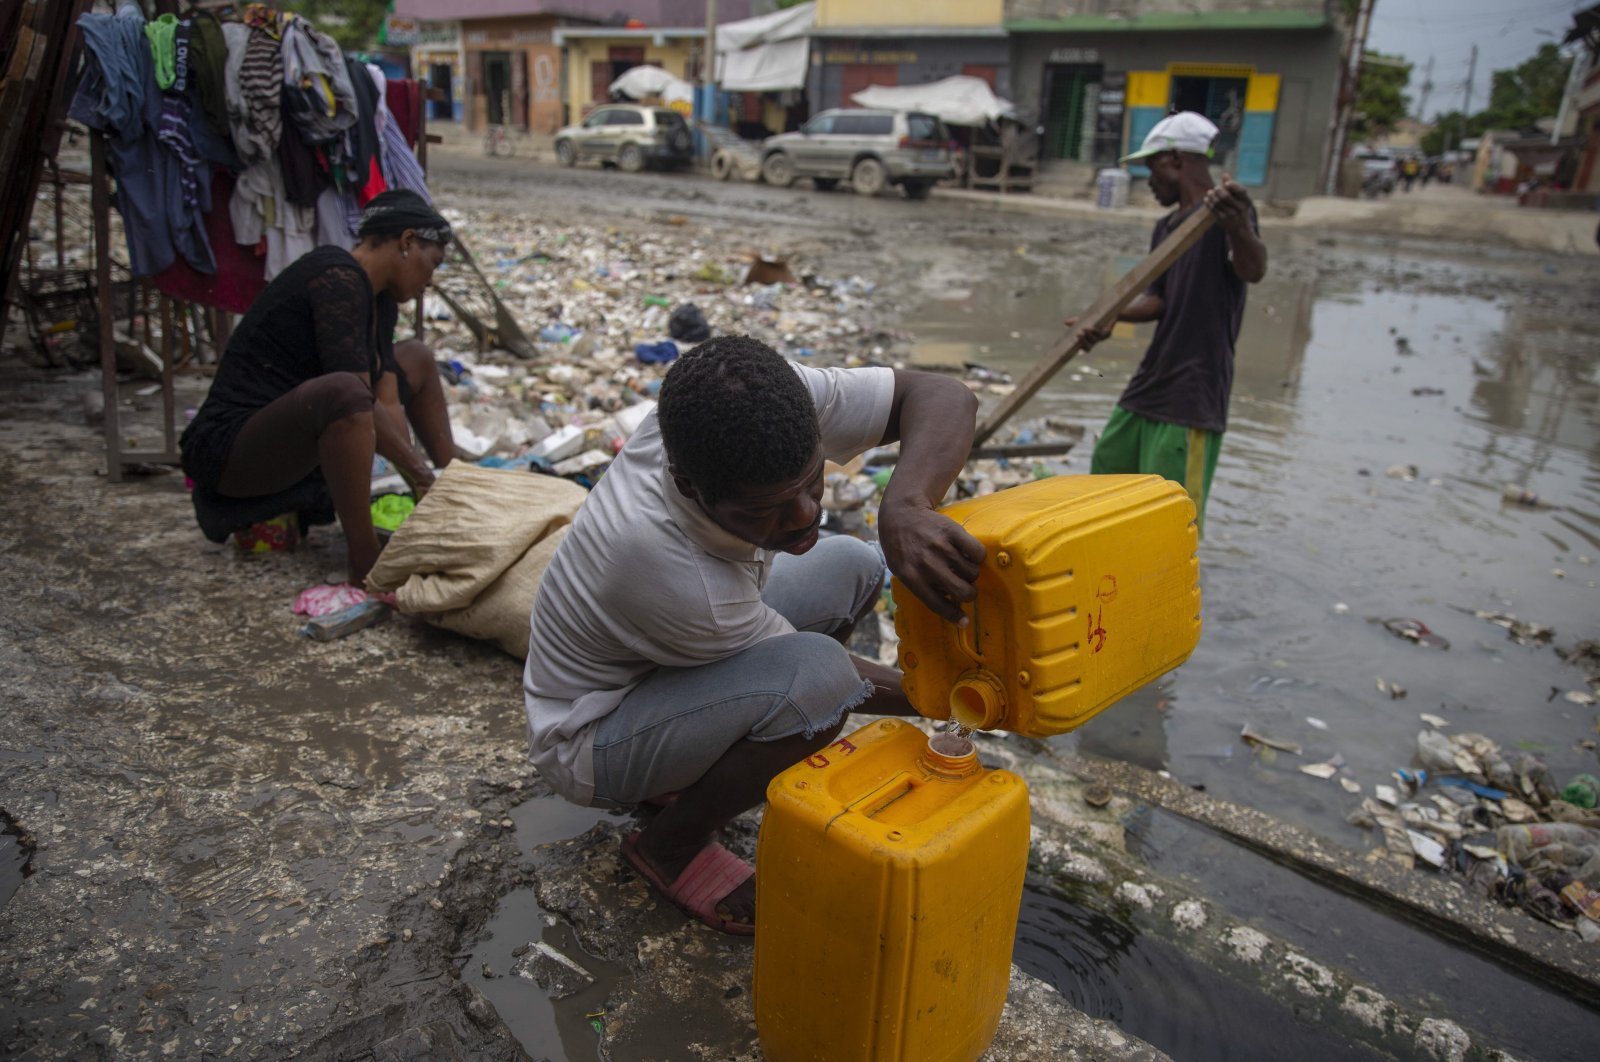 A man collects water next in a flooded street, in the Portail neighborhood of Port-au-Prince, Haiti, Oct. 4, 2021. (AP Photo)